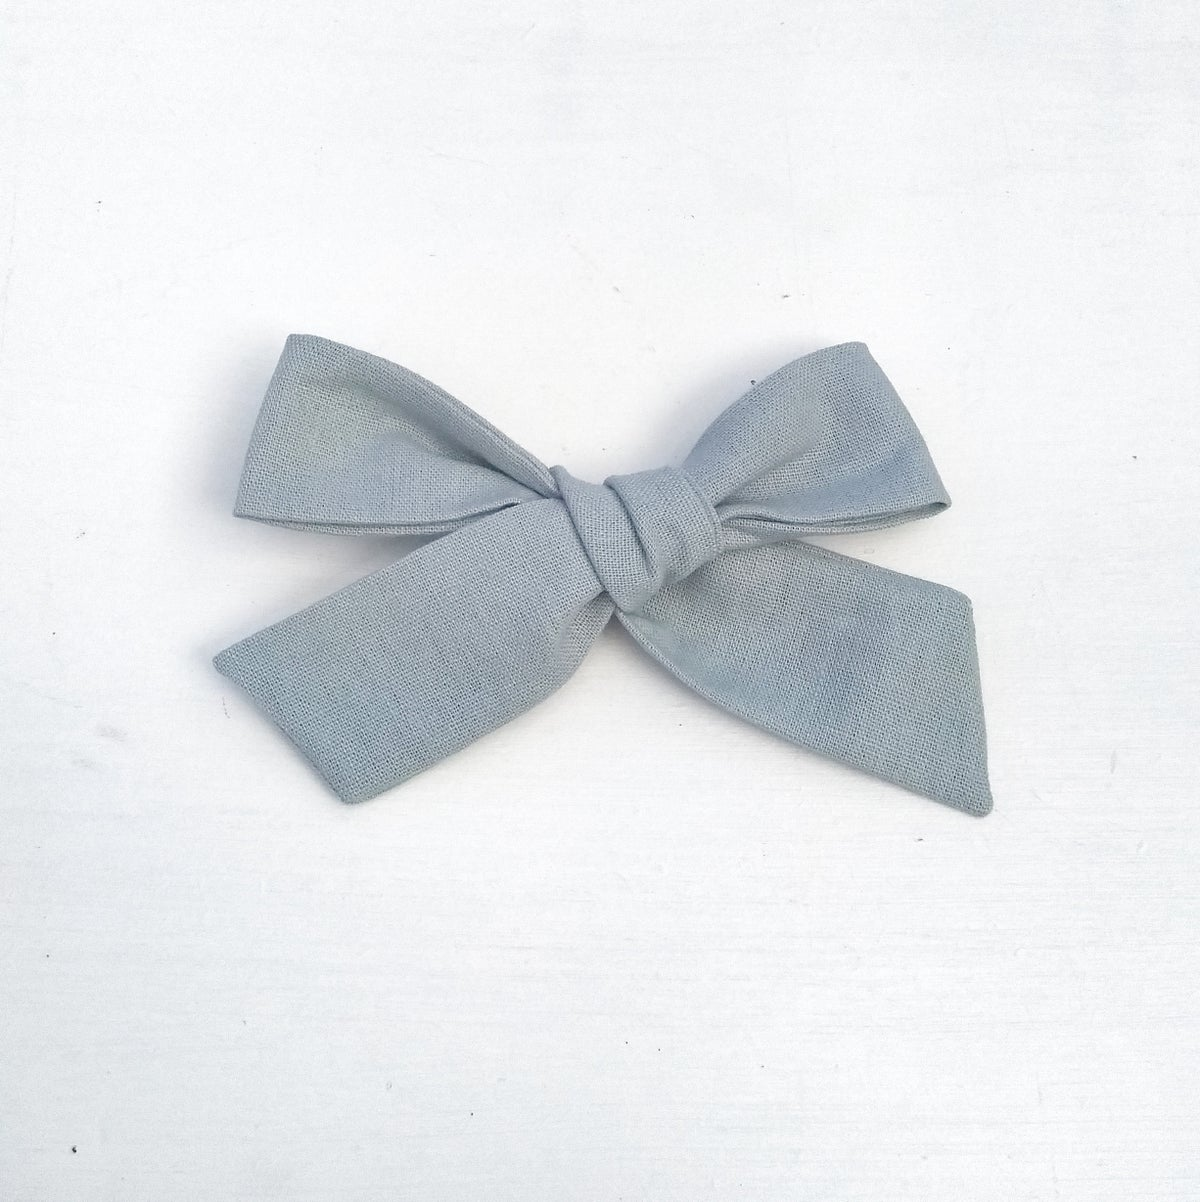 Image of Over Sized Hand Tied Hair Bow - Duck Egg Blue Linen